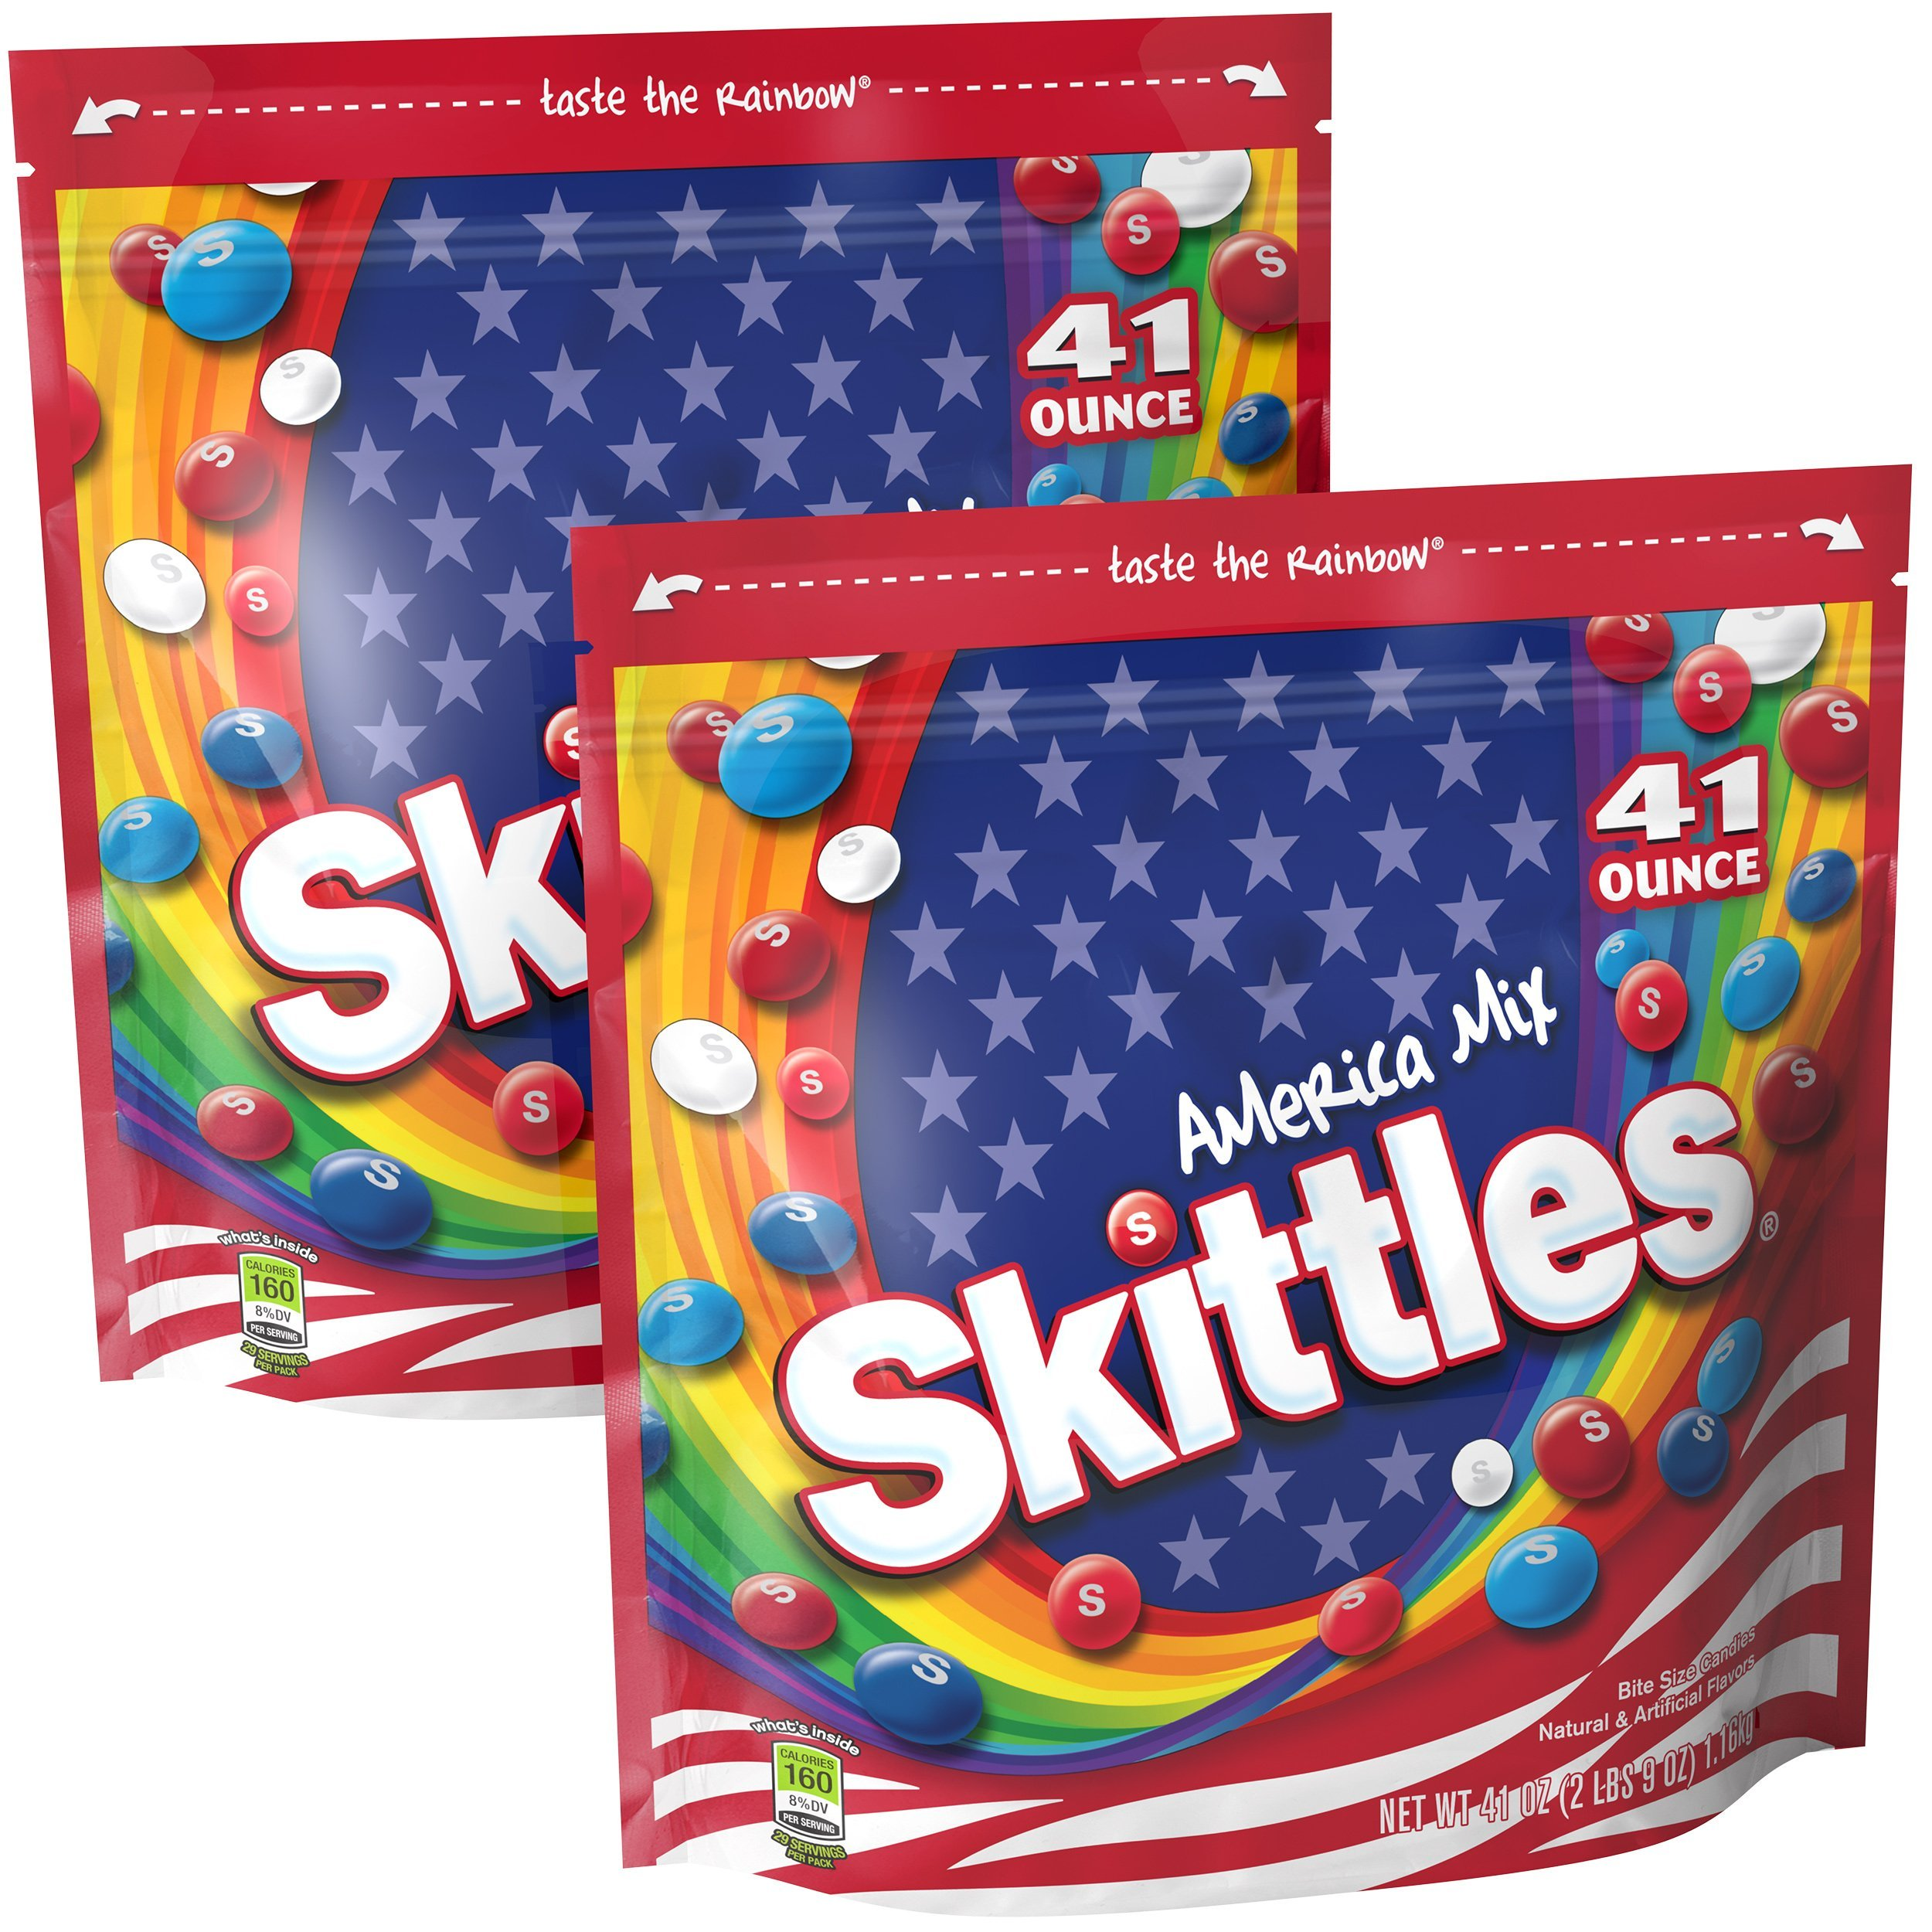 Skittles America Mix Candy, 41 ounce (2 bags) by Skittles